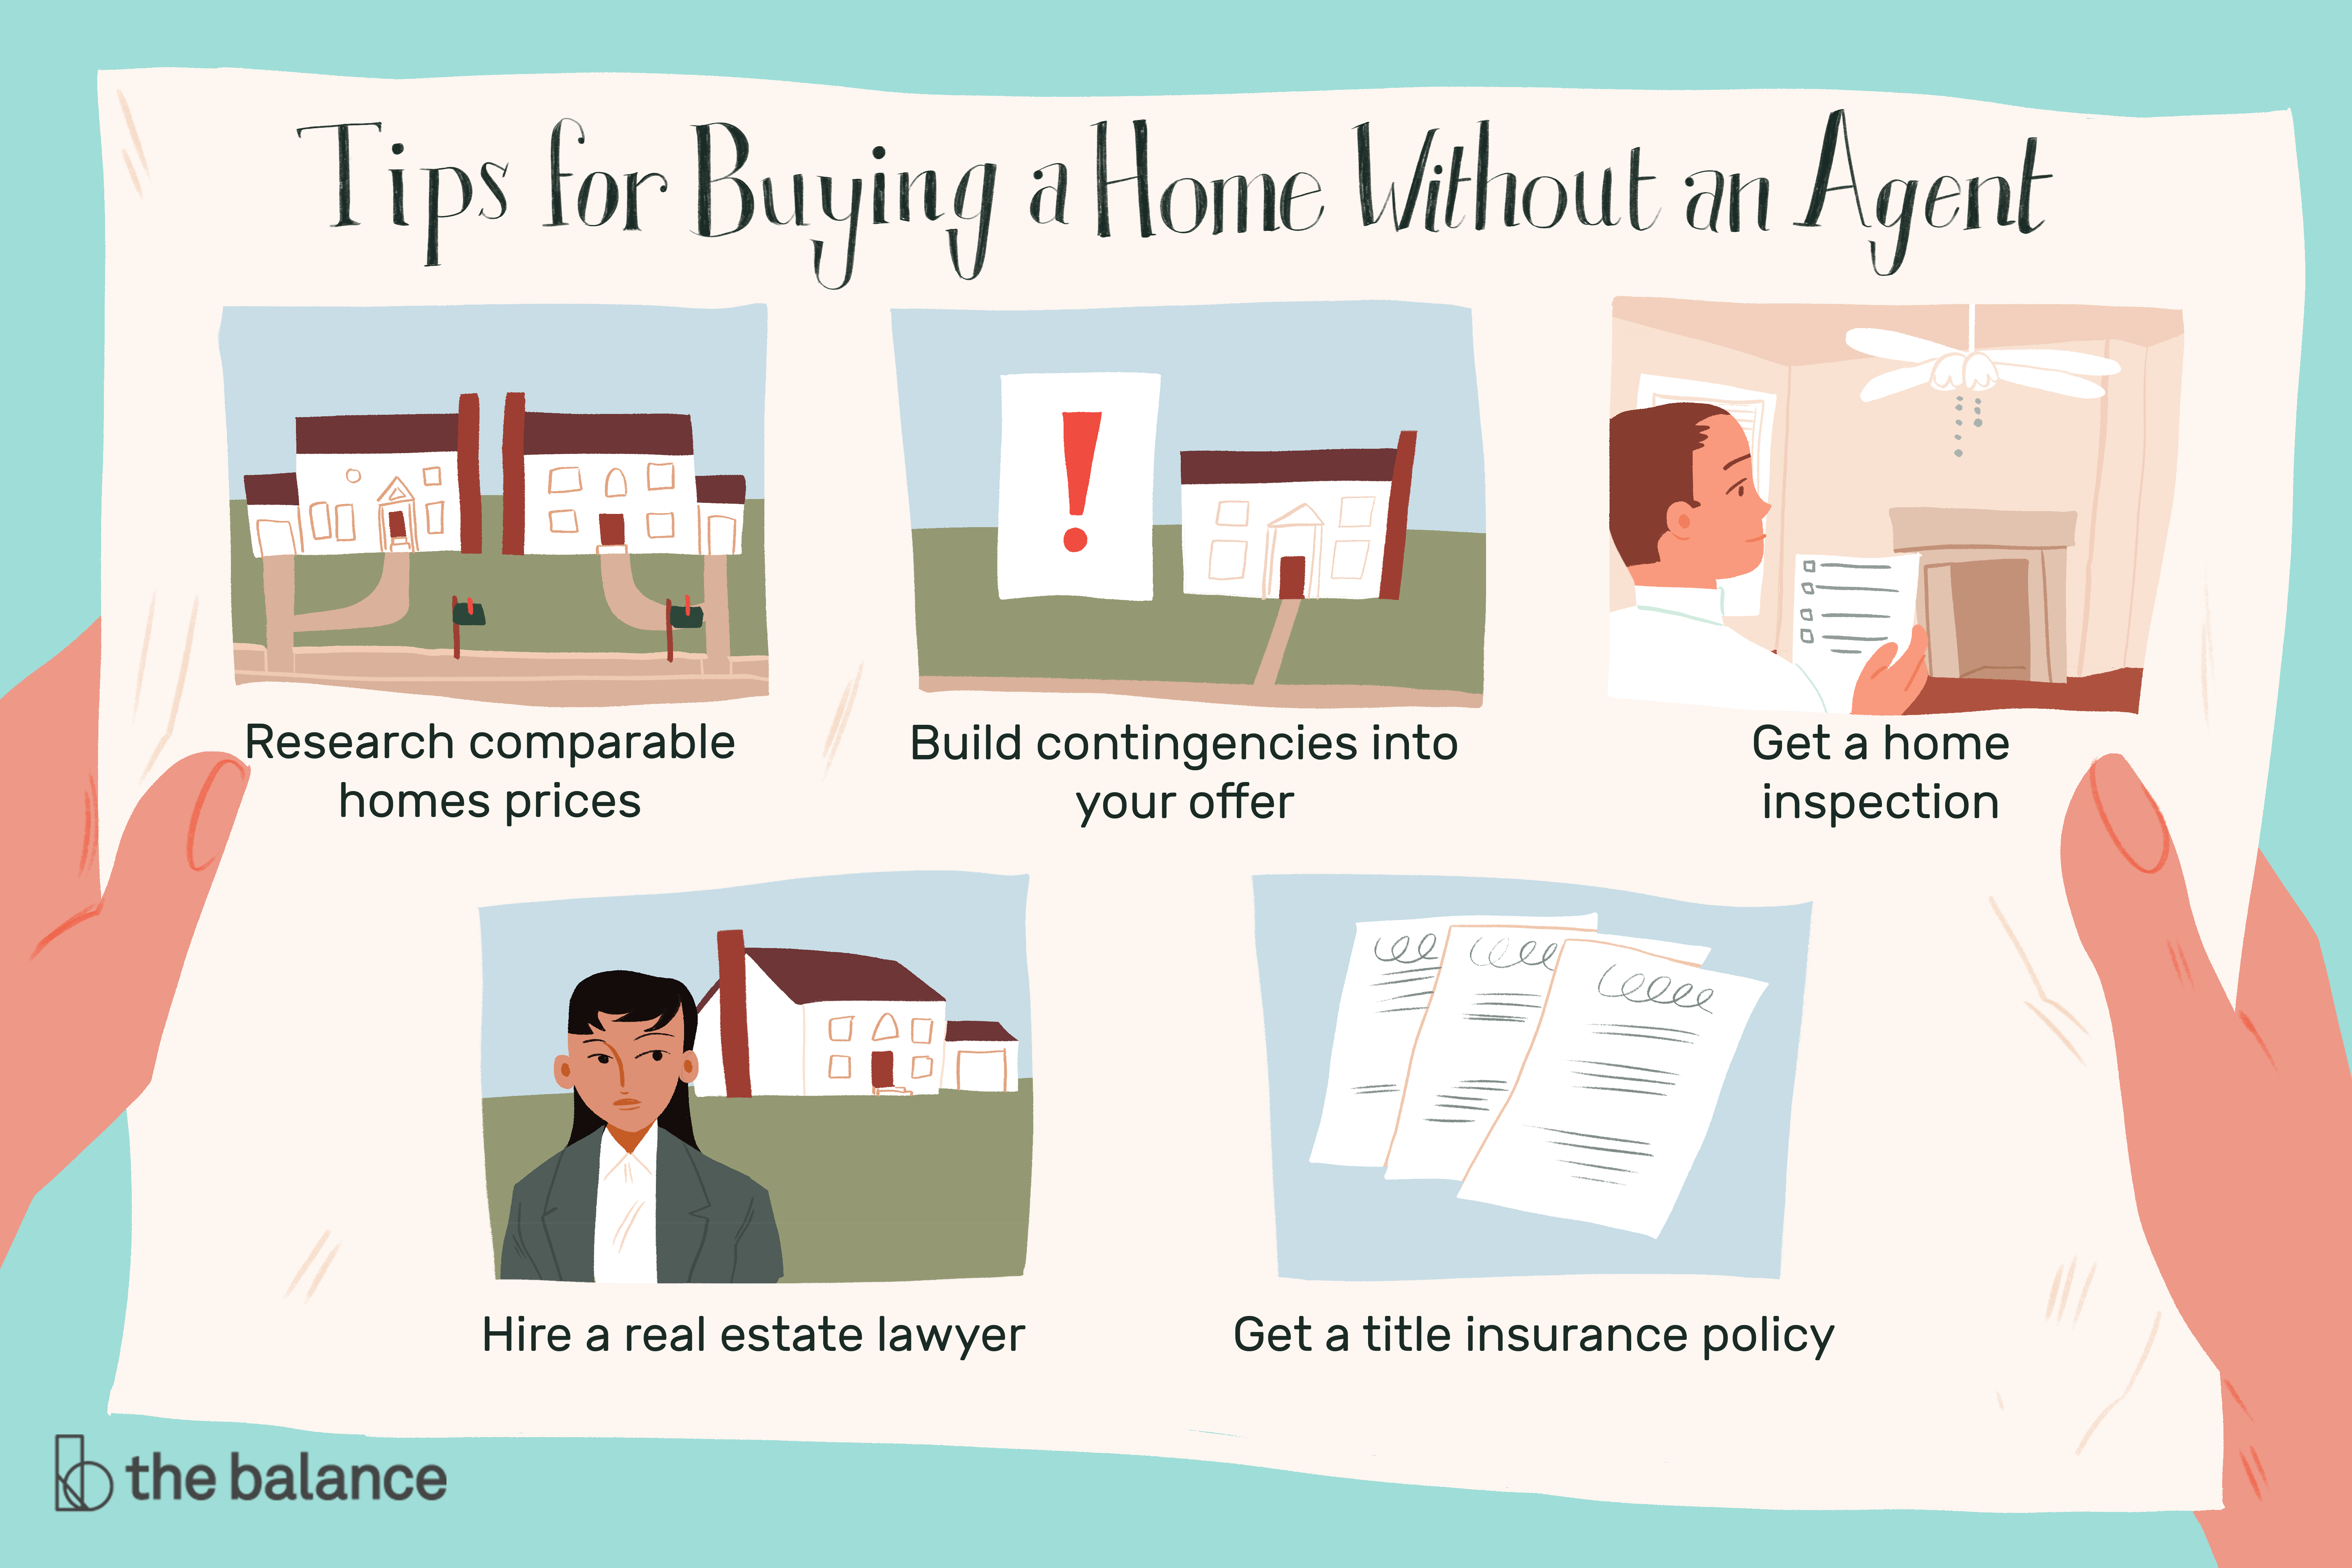 Know These Risks and Tips Before Buying a Home Without an Agent